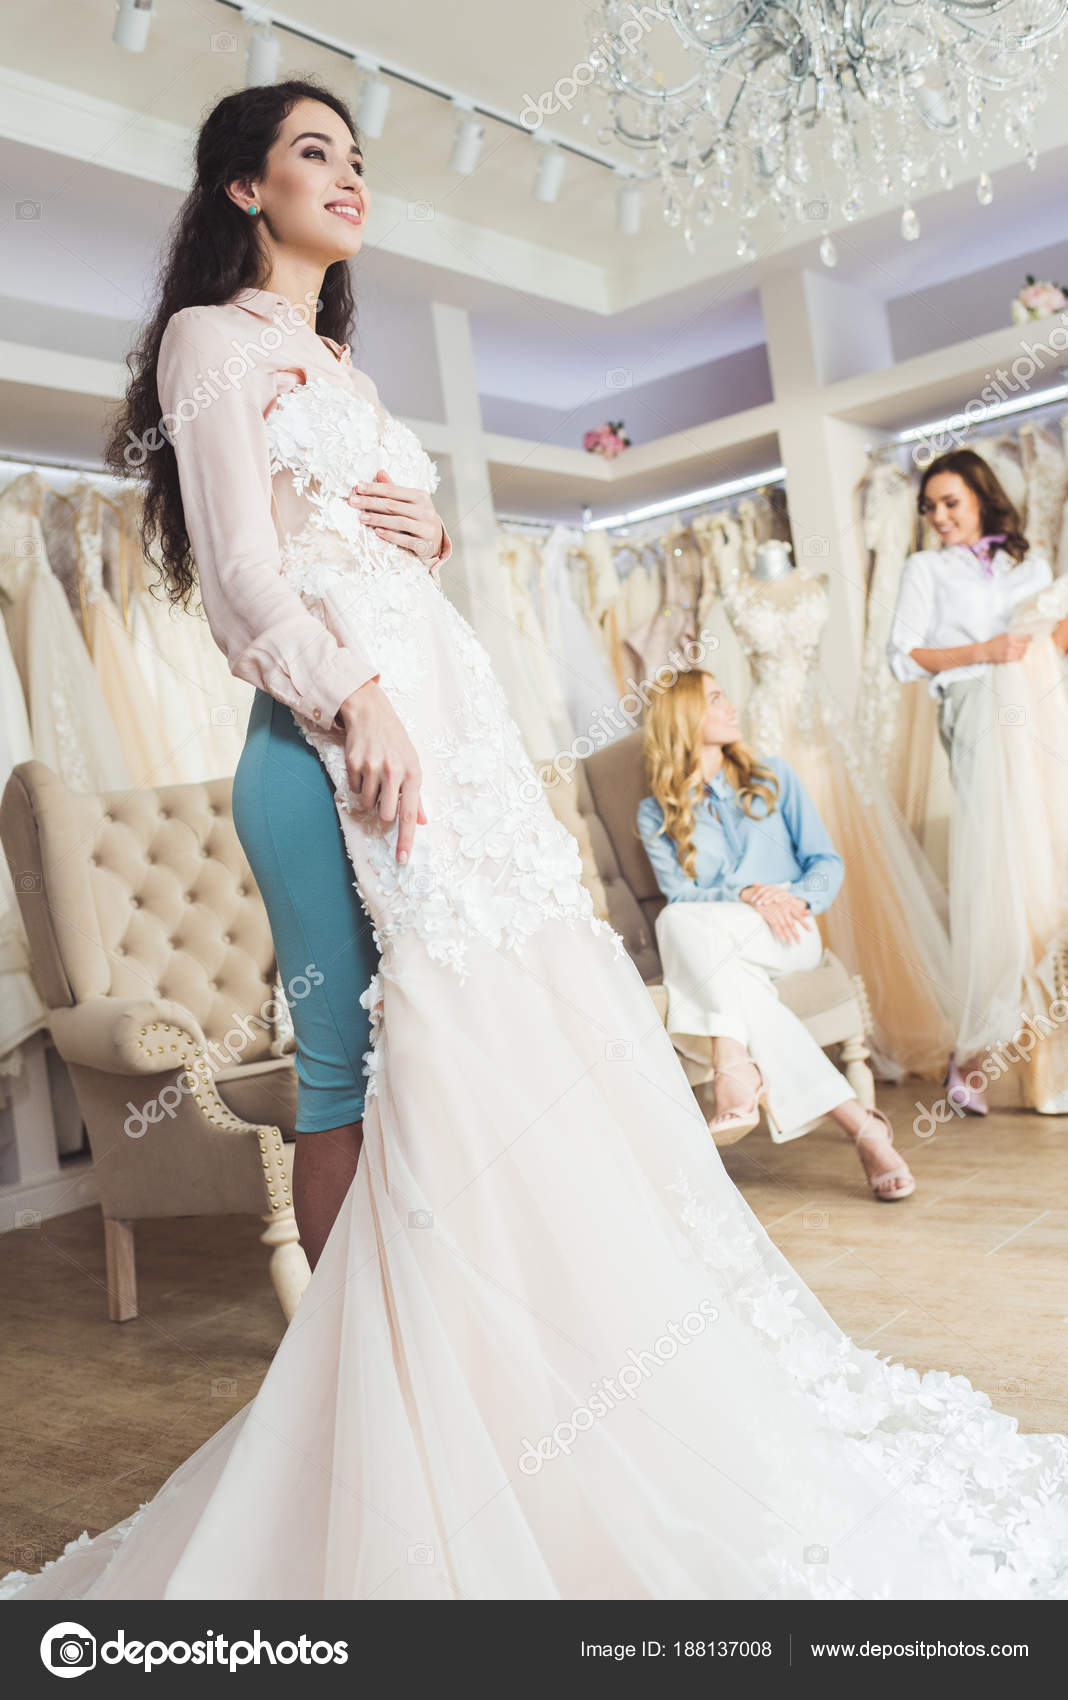 Bride Lace Dresses Bridesmaids Wedding Atelier — Stock Photo ...